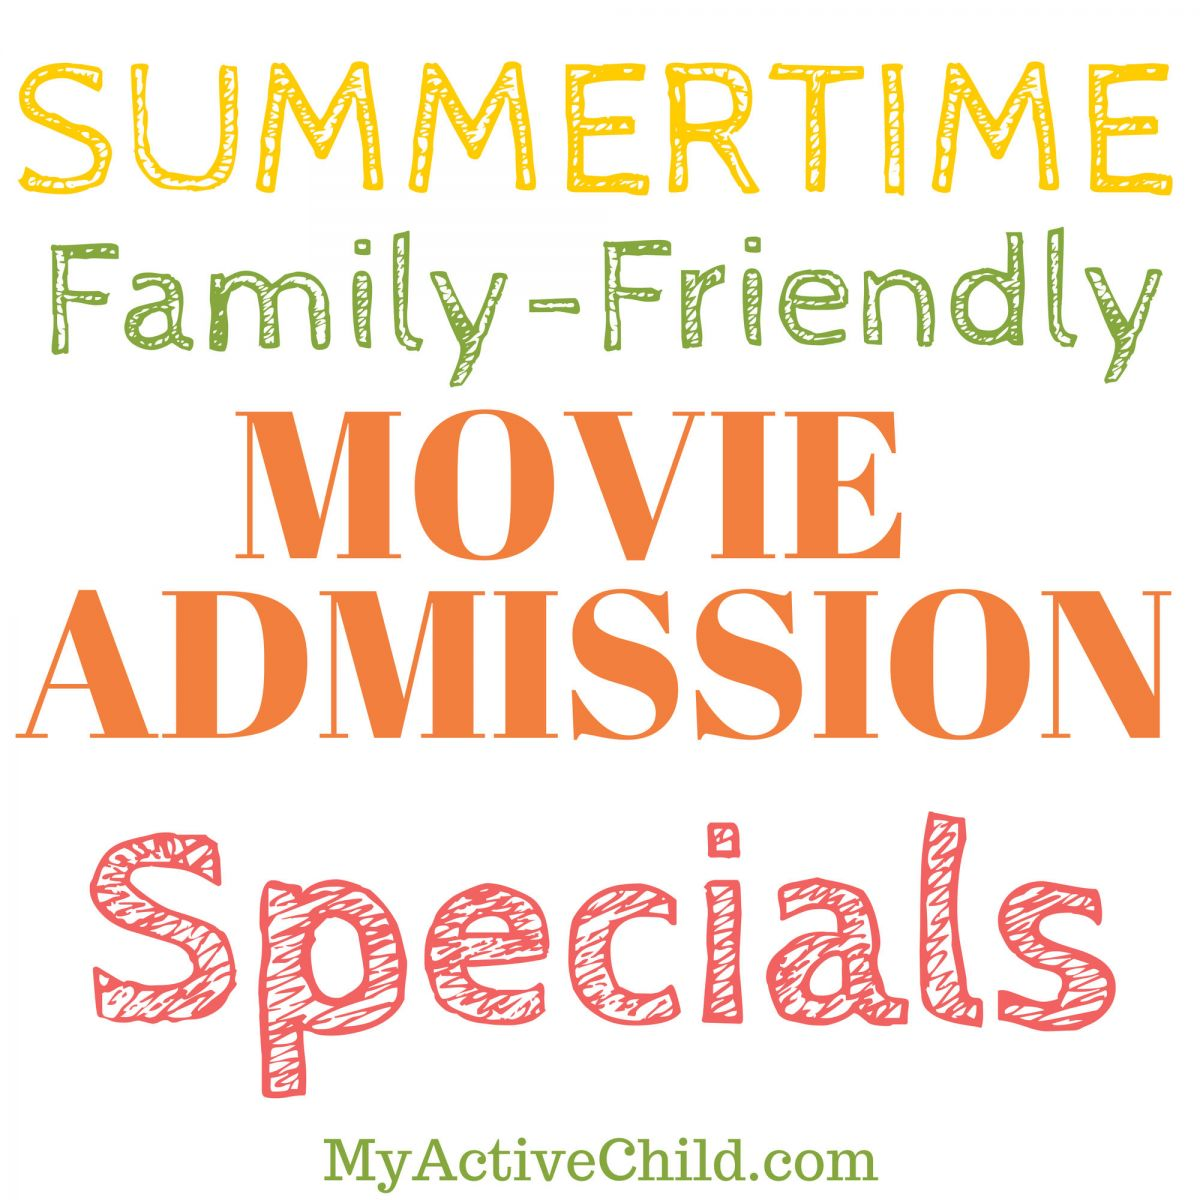 Take advantage of the last weeks for #Summer #Movie Specials in Hampton Roads! #757 #letsgotothemovies #summertime #summermovies #hrva